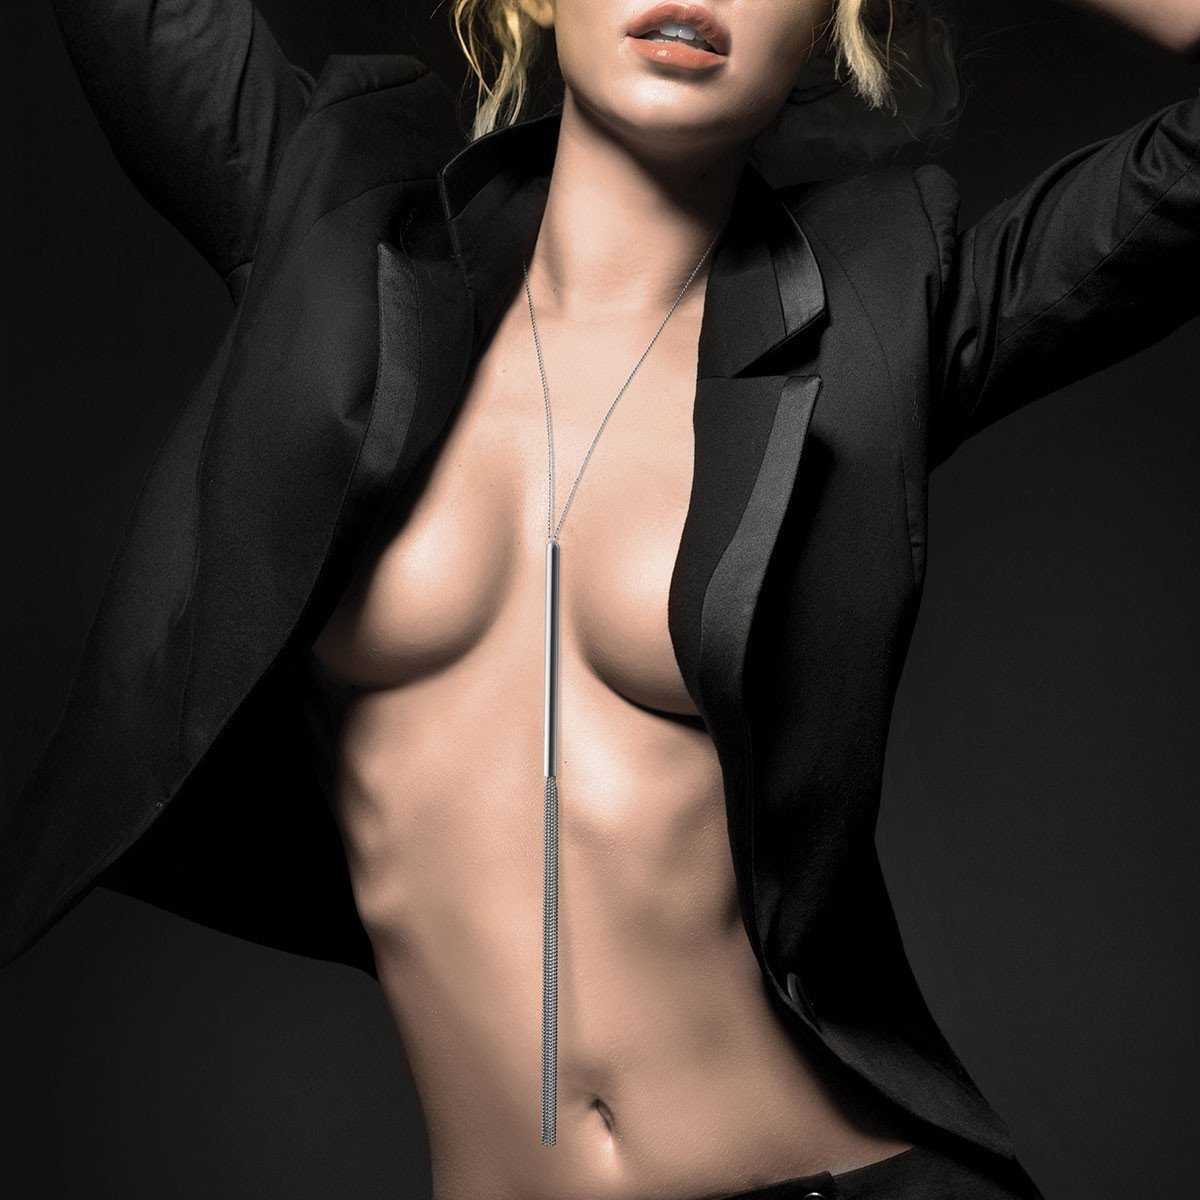 Bijoux Indiscrets Magnifique Collection Chain Necklace Whip Whips & Teasers Bijoux Indiscrets